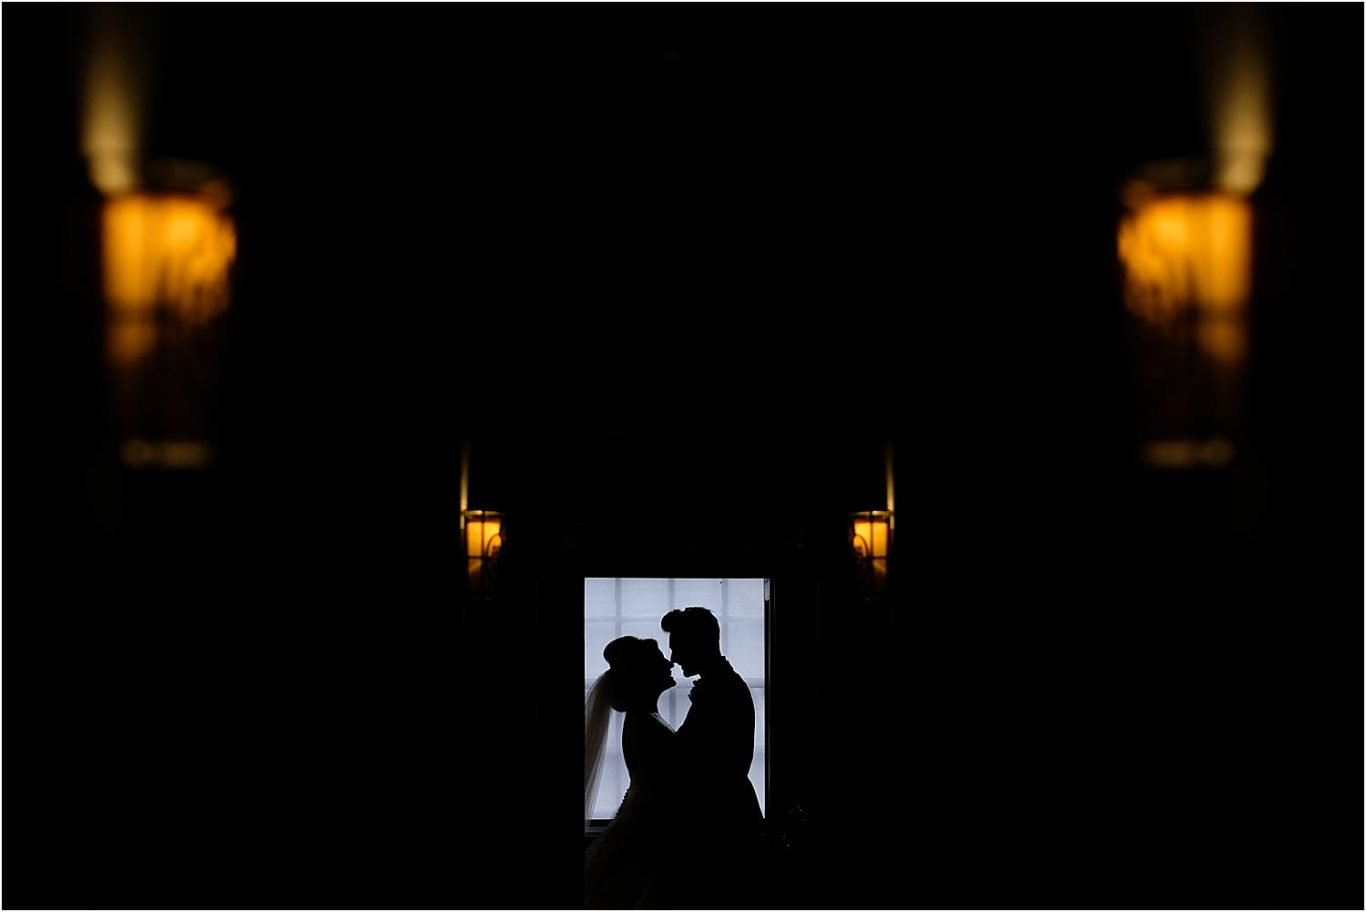 bride and groom silhouette in window